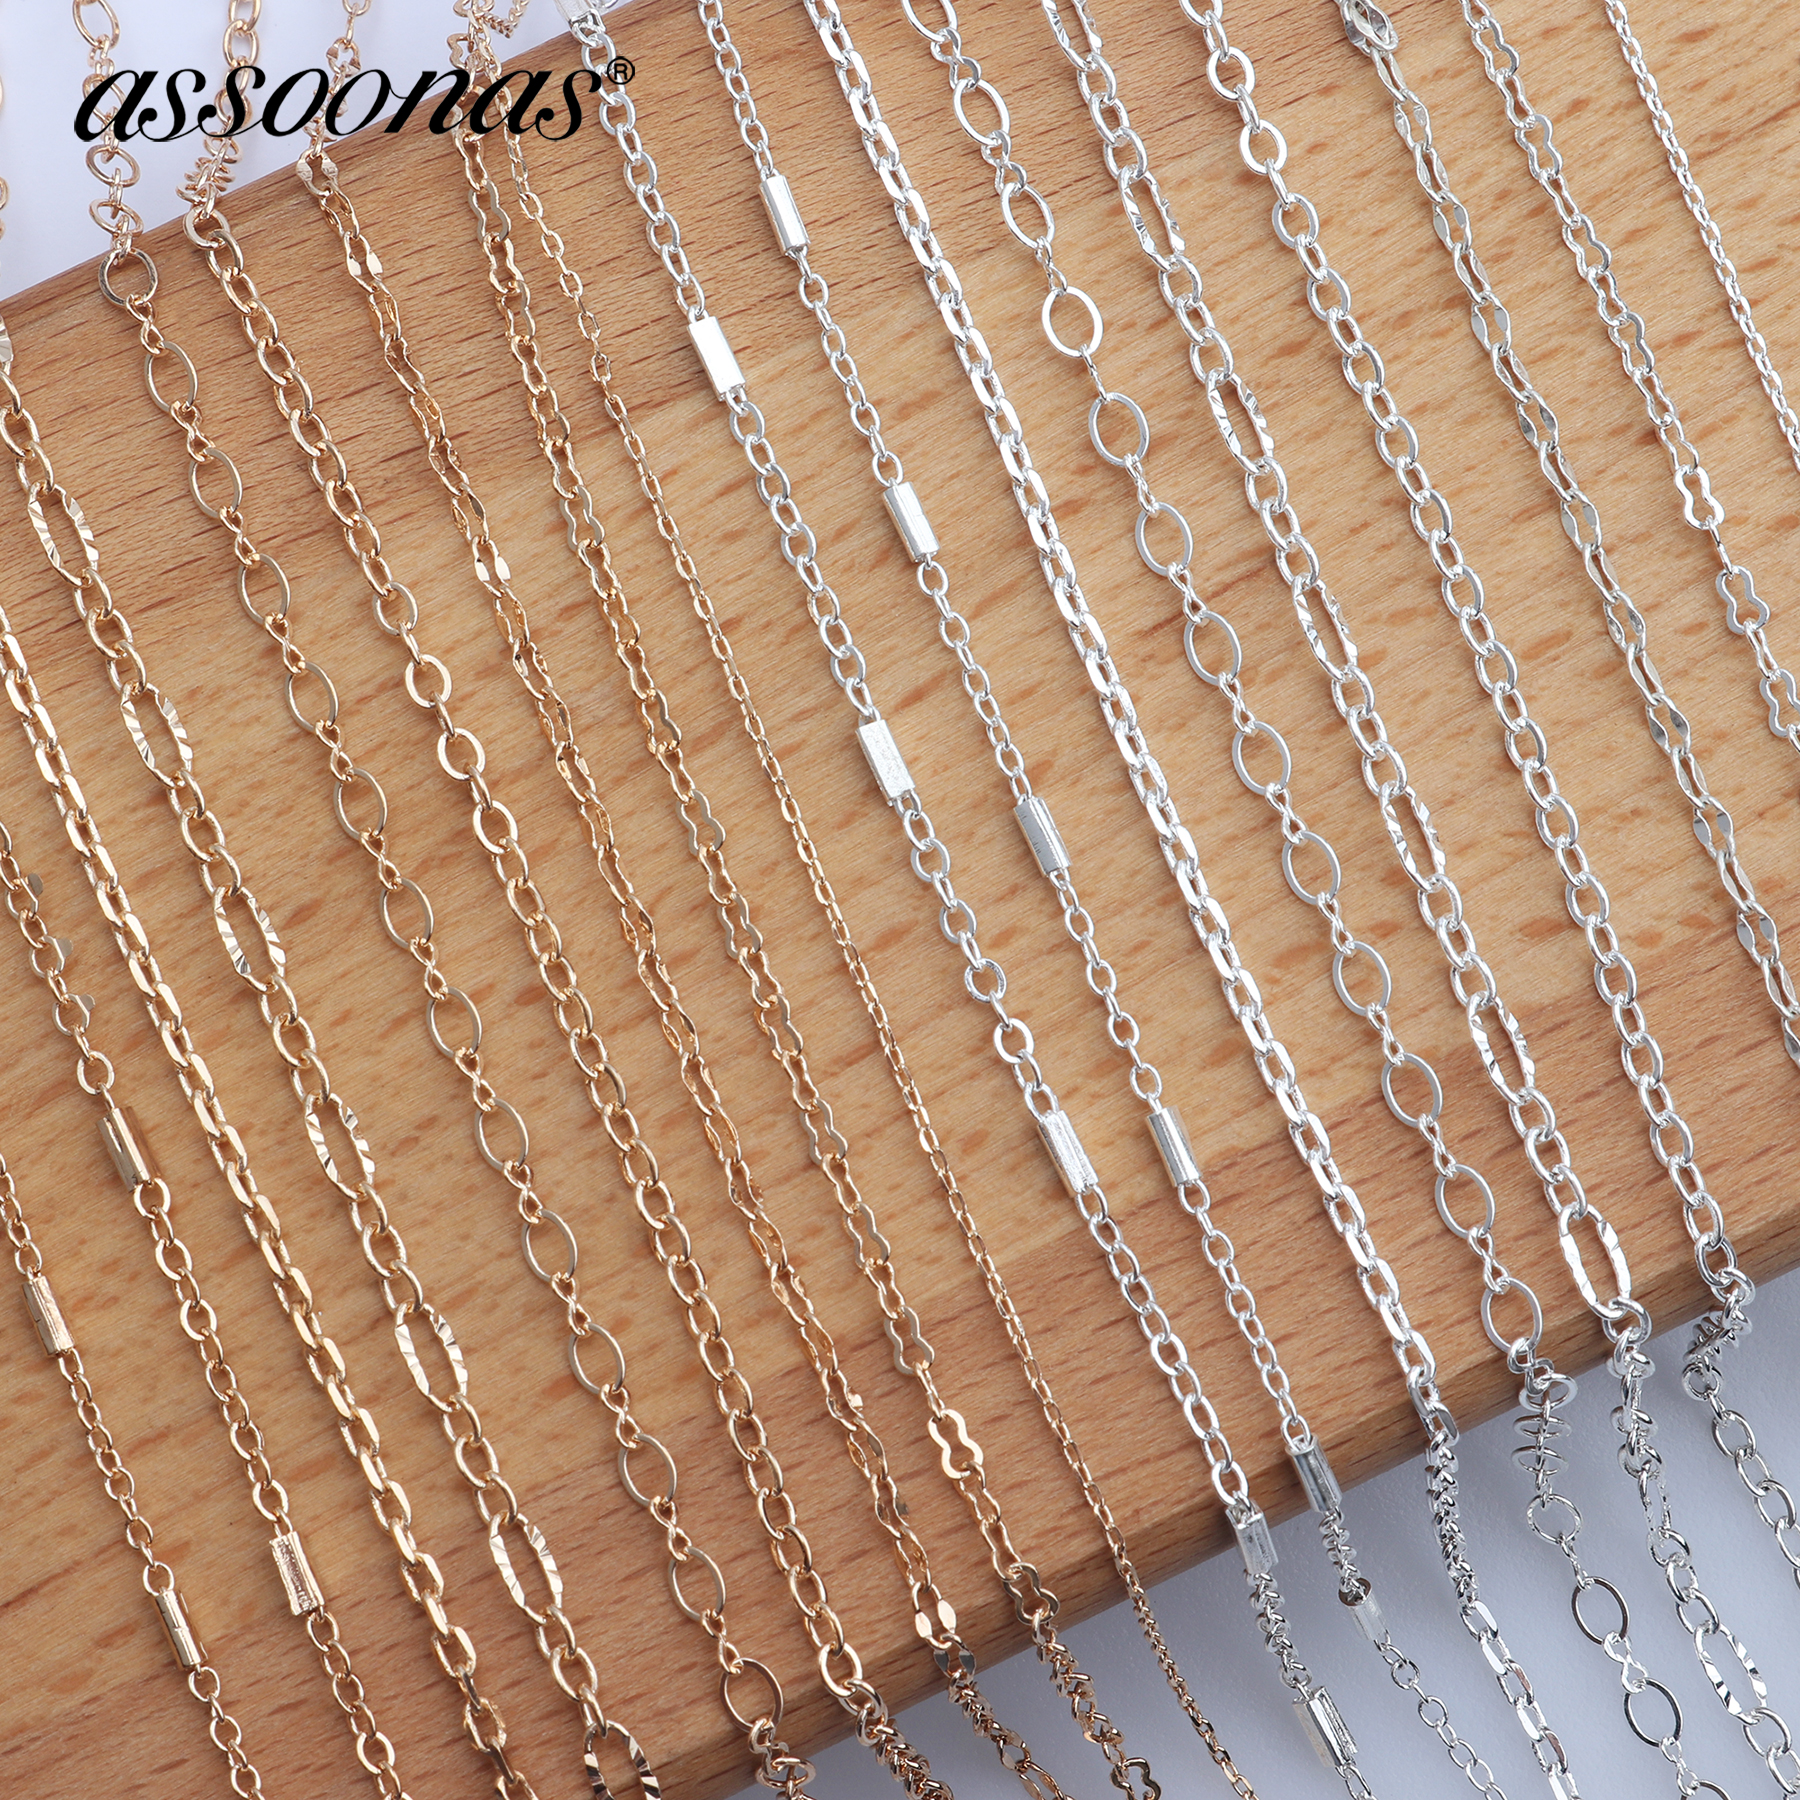 Assoonas Chain Jewelry Findings Jewlery-Accessories Materials Silver Golden C42 5m/Lot title=